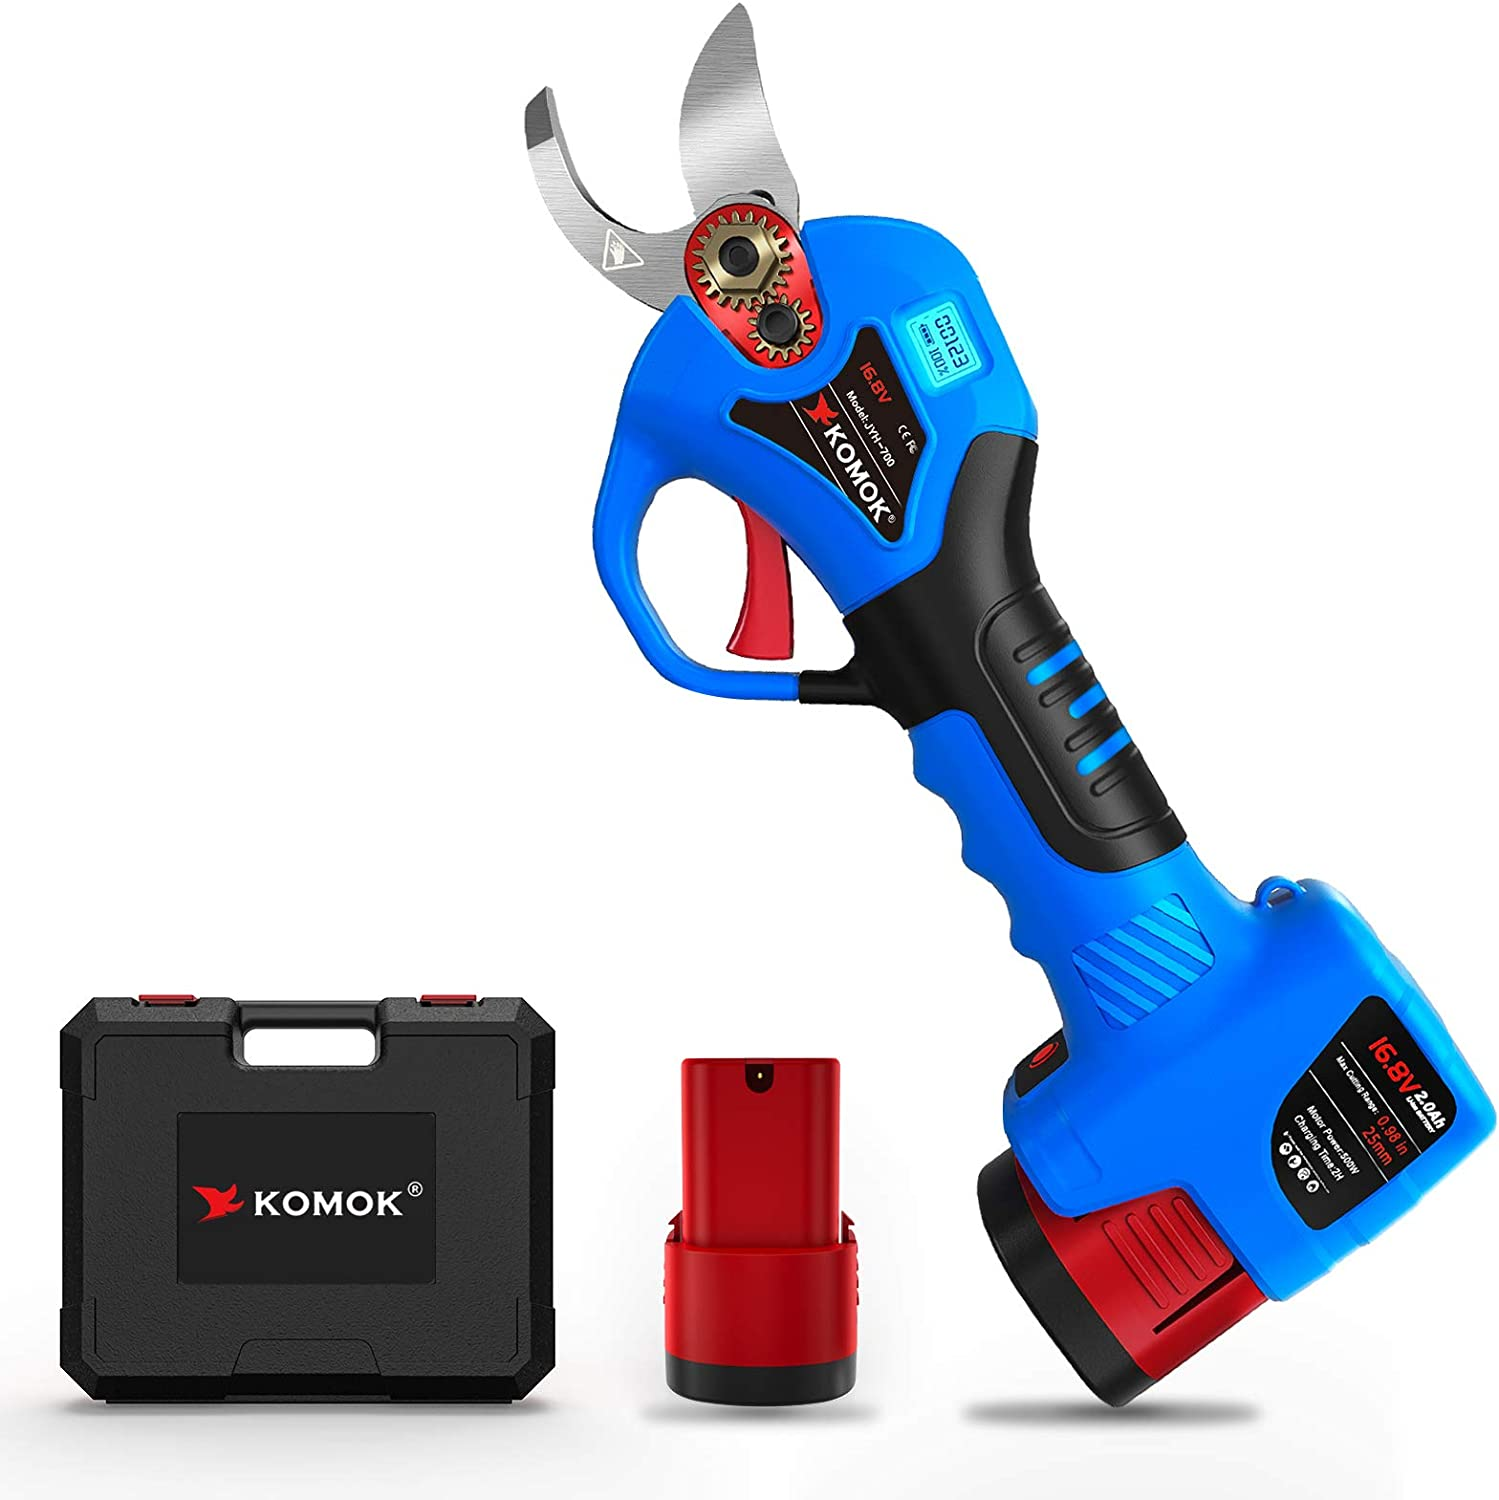 KOMOK Overseas parallel import regular item Cordless Electric Max 71% OFF Pruning Shears 2 B Rechargeable LED with